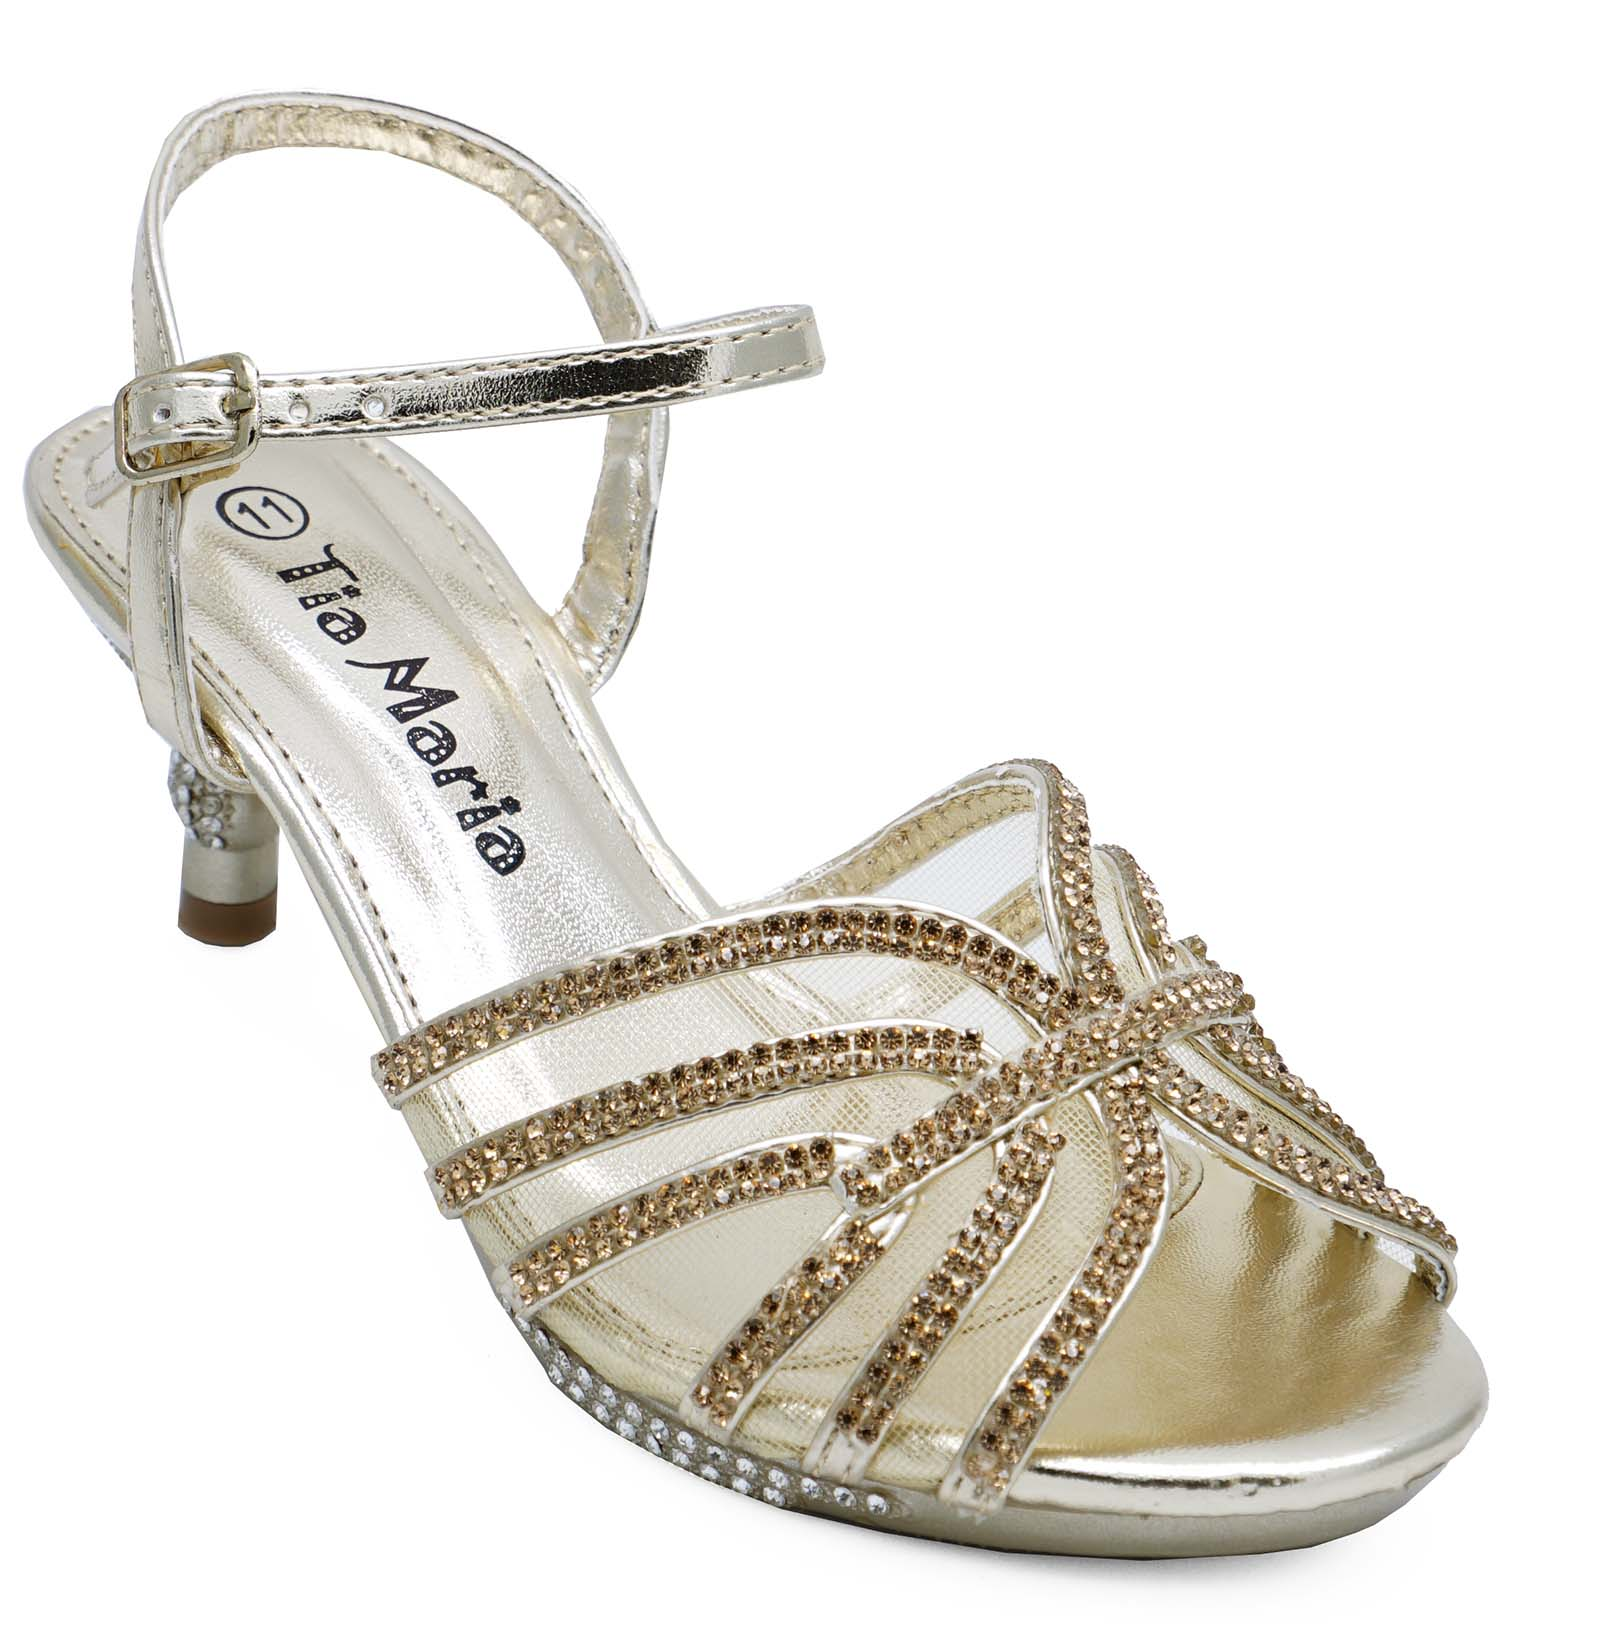 cf3cf76e7 Sentinel GIRLS CHILDRENS GOLD DIAMANTE LOW-HEEL SANDALS PRETTY PARTY DRESS  SHOES UK 10-2